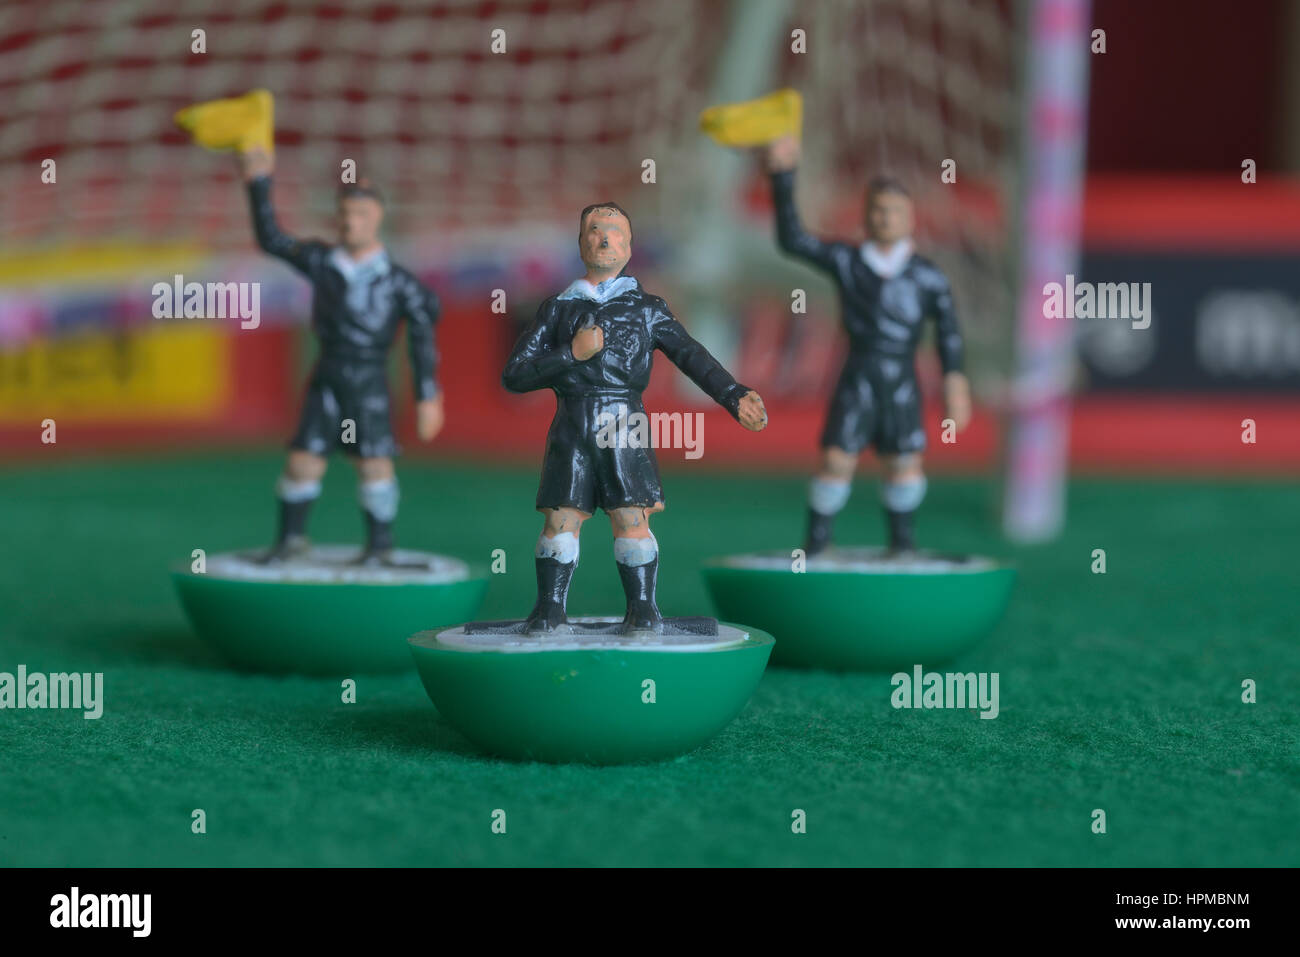 Subbuteo table football referee and linesmen - Stock Image